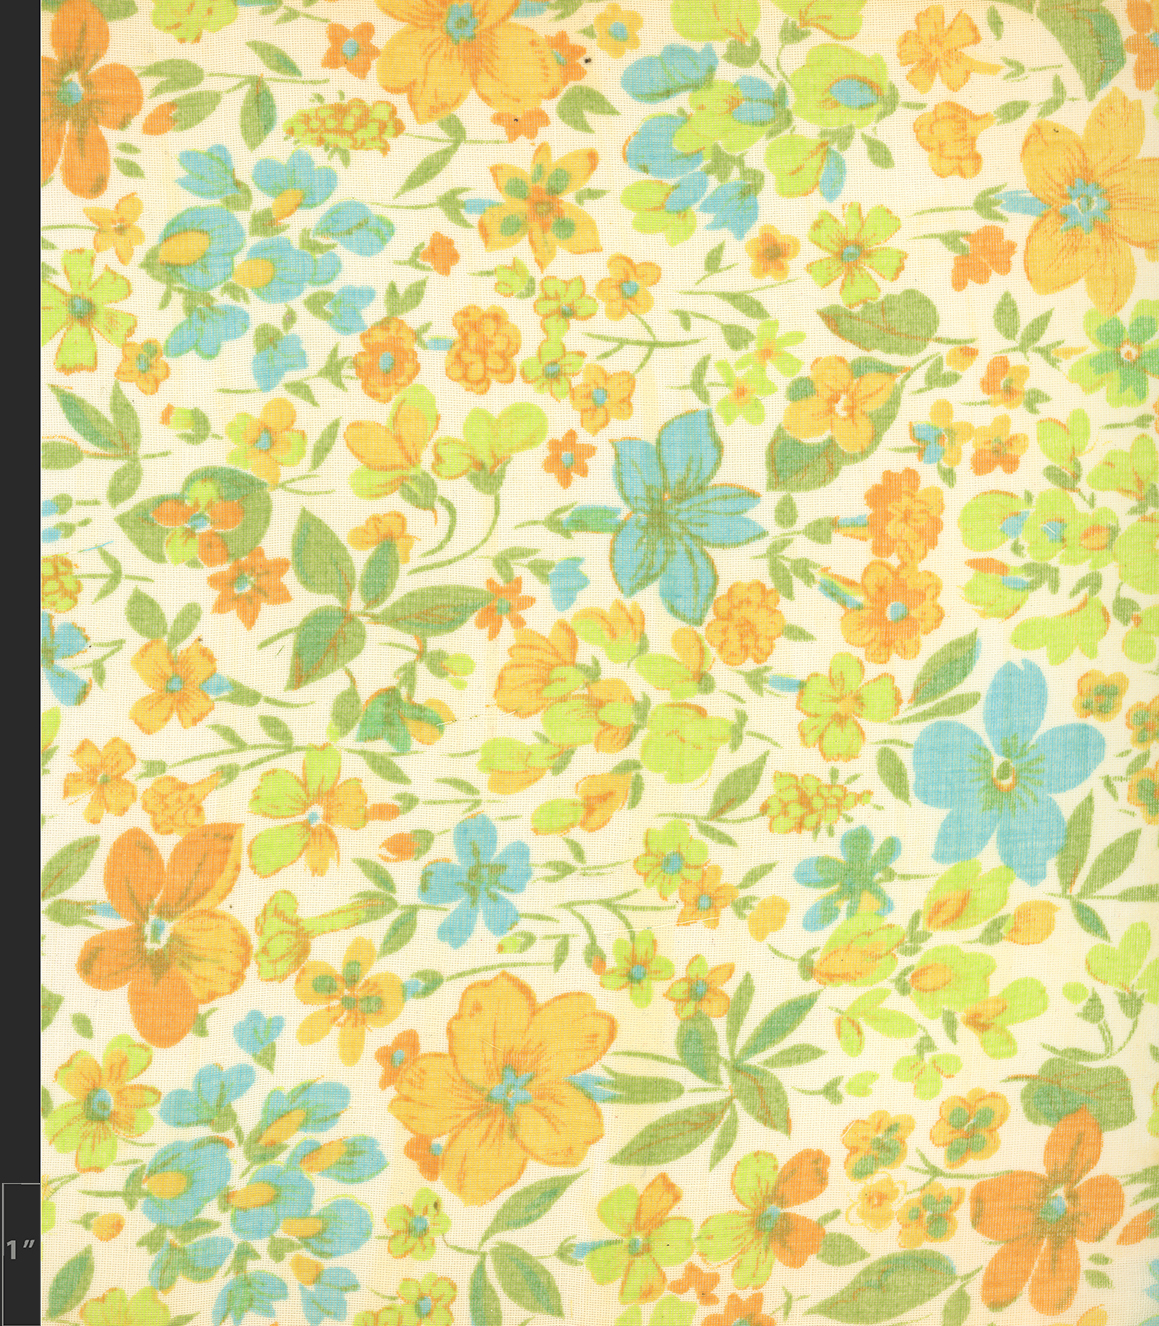 Marielle Bancou Segal floral printed textile design for The Villager 1960s full 2 Drexel Digital Museum 05F